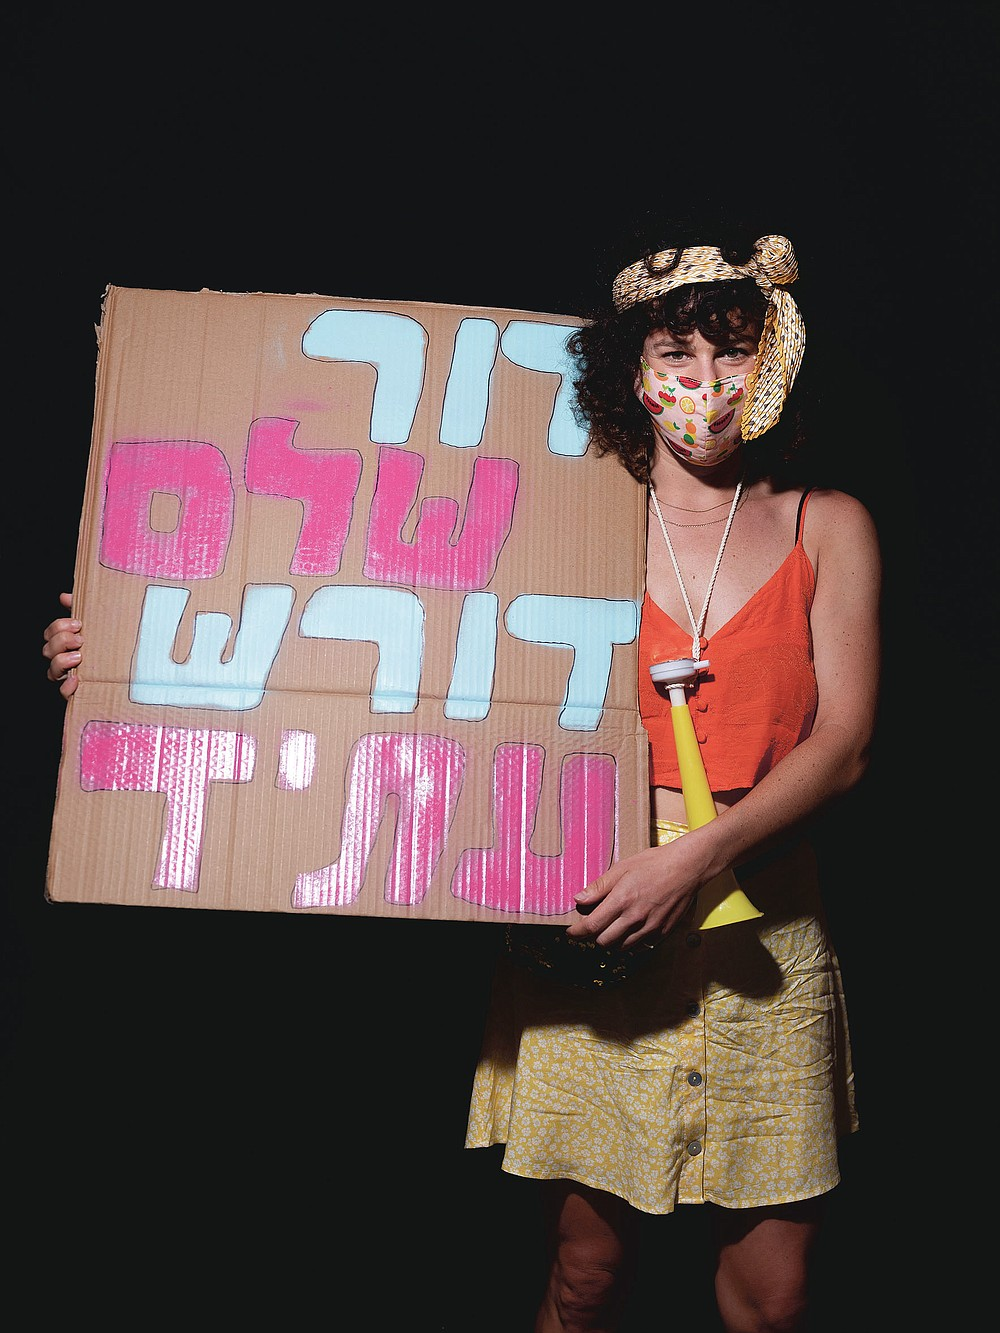 """Kalanit Sharon, 31, poses for a photo during a protest against Israel's Prime Minister Benjamin Netanyahu, outside his residence in Jerusalem, Thursday, July 23, 2020. Hebrew on sign reads """"An entire generation demands for future"""". The wave of colorful and combative demonstrations against Netanyahu and his perceived failure to handle the country's deepening economic crisis have been characterized by youth. With flags, facemasks, drums, placards and an assortment of props, thousands have been taking to the streets to demand change in a variety of unique ways. (AP Photo/Oded Balilty)"""